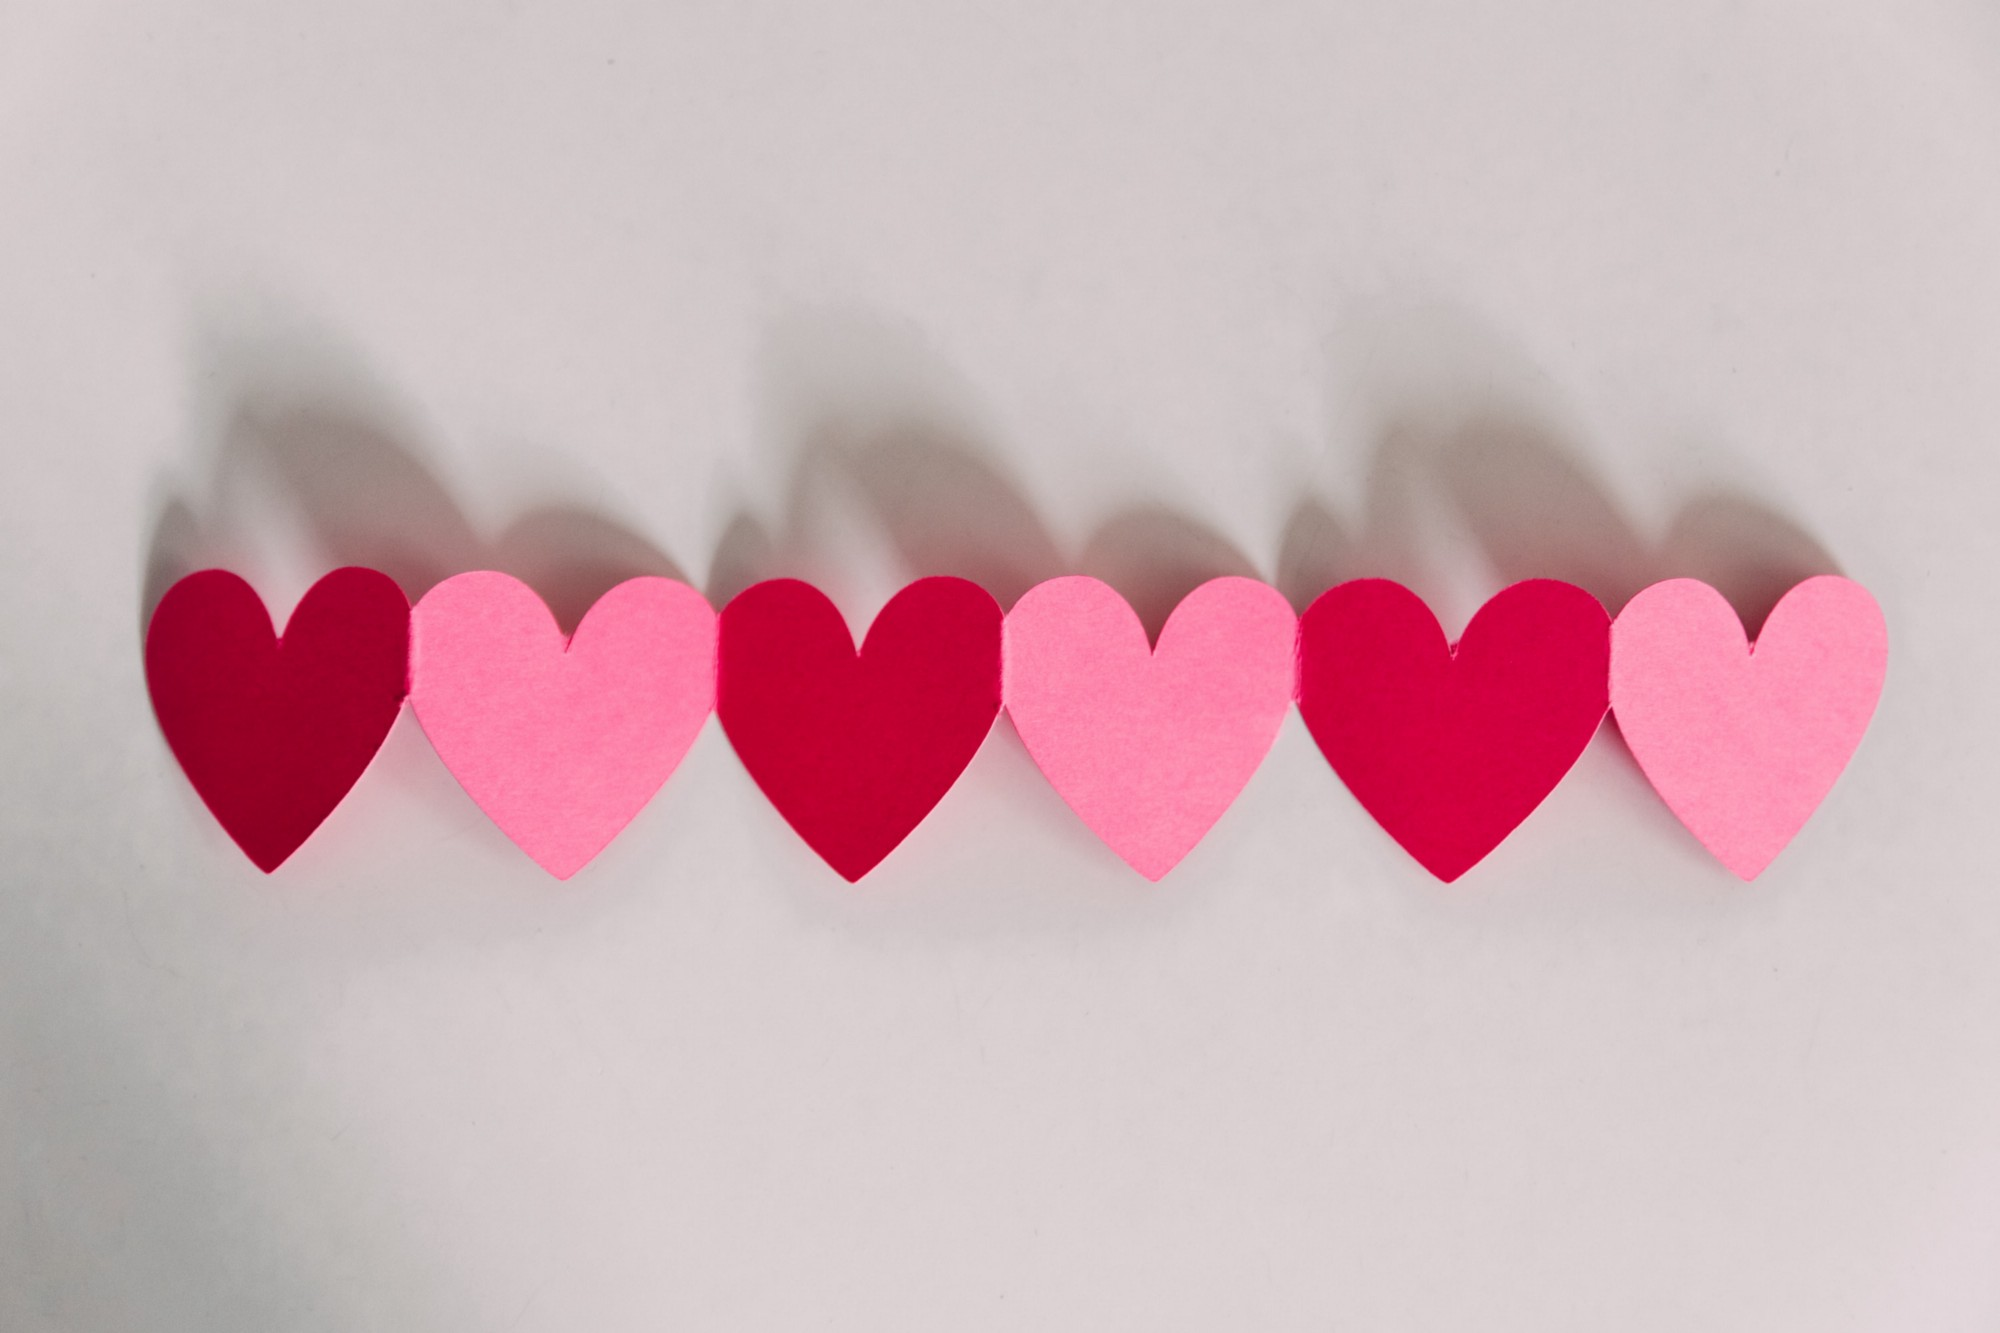 Paper hearts in a chain